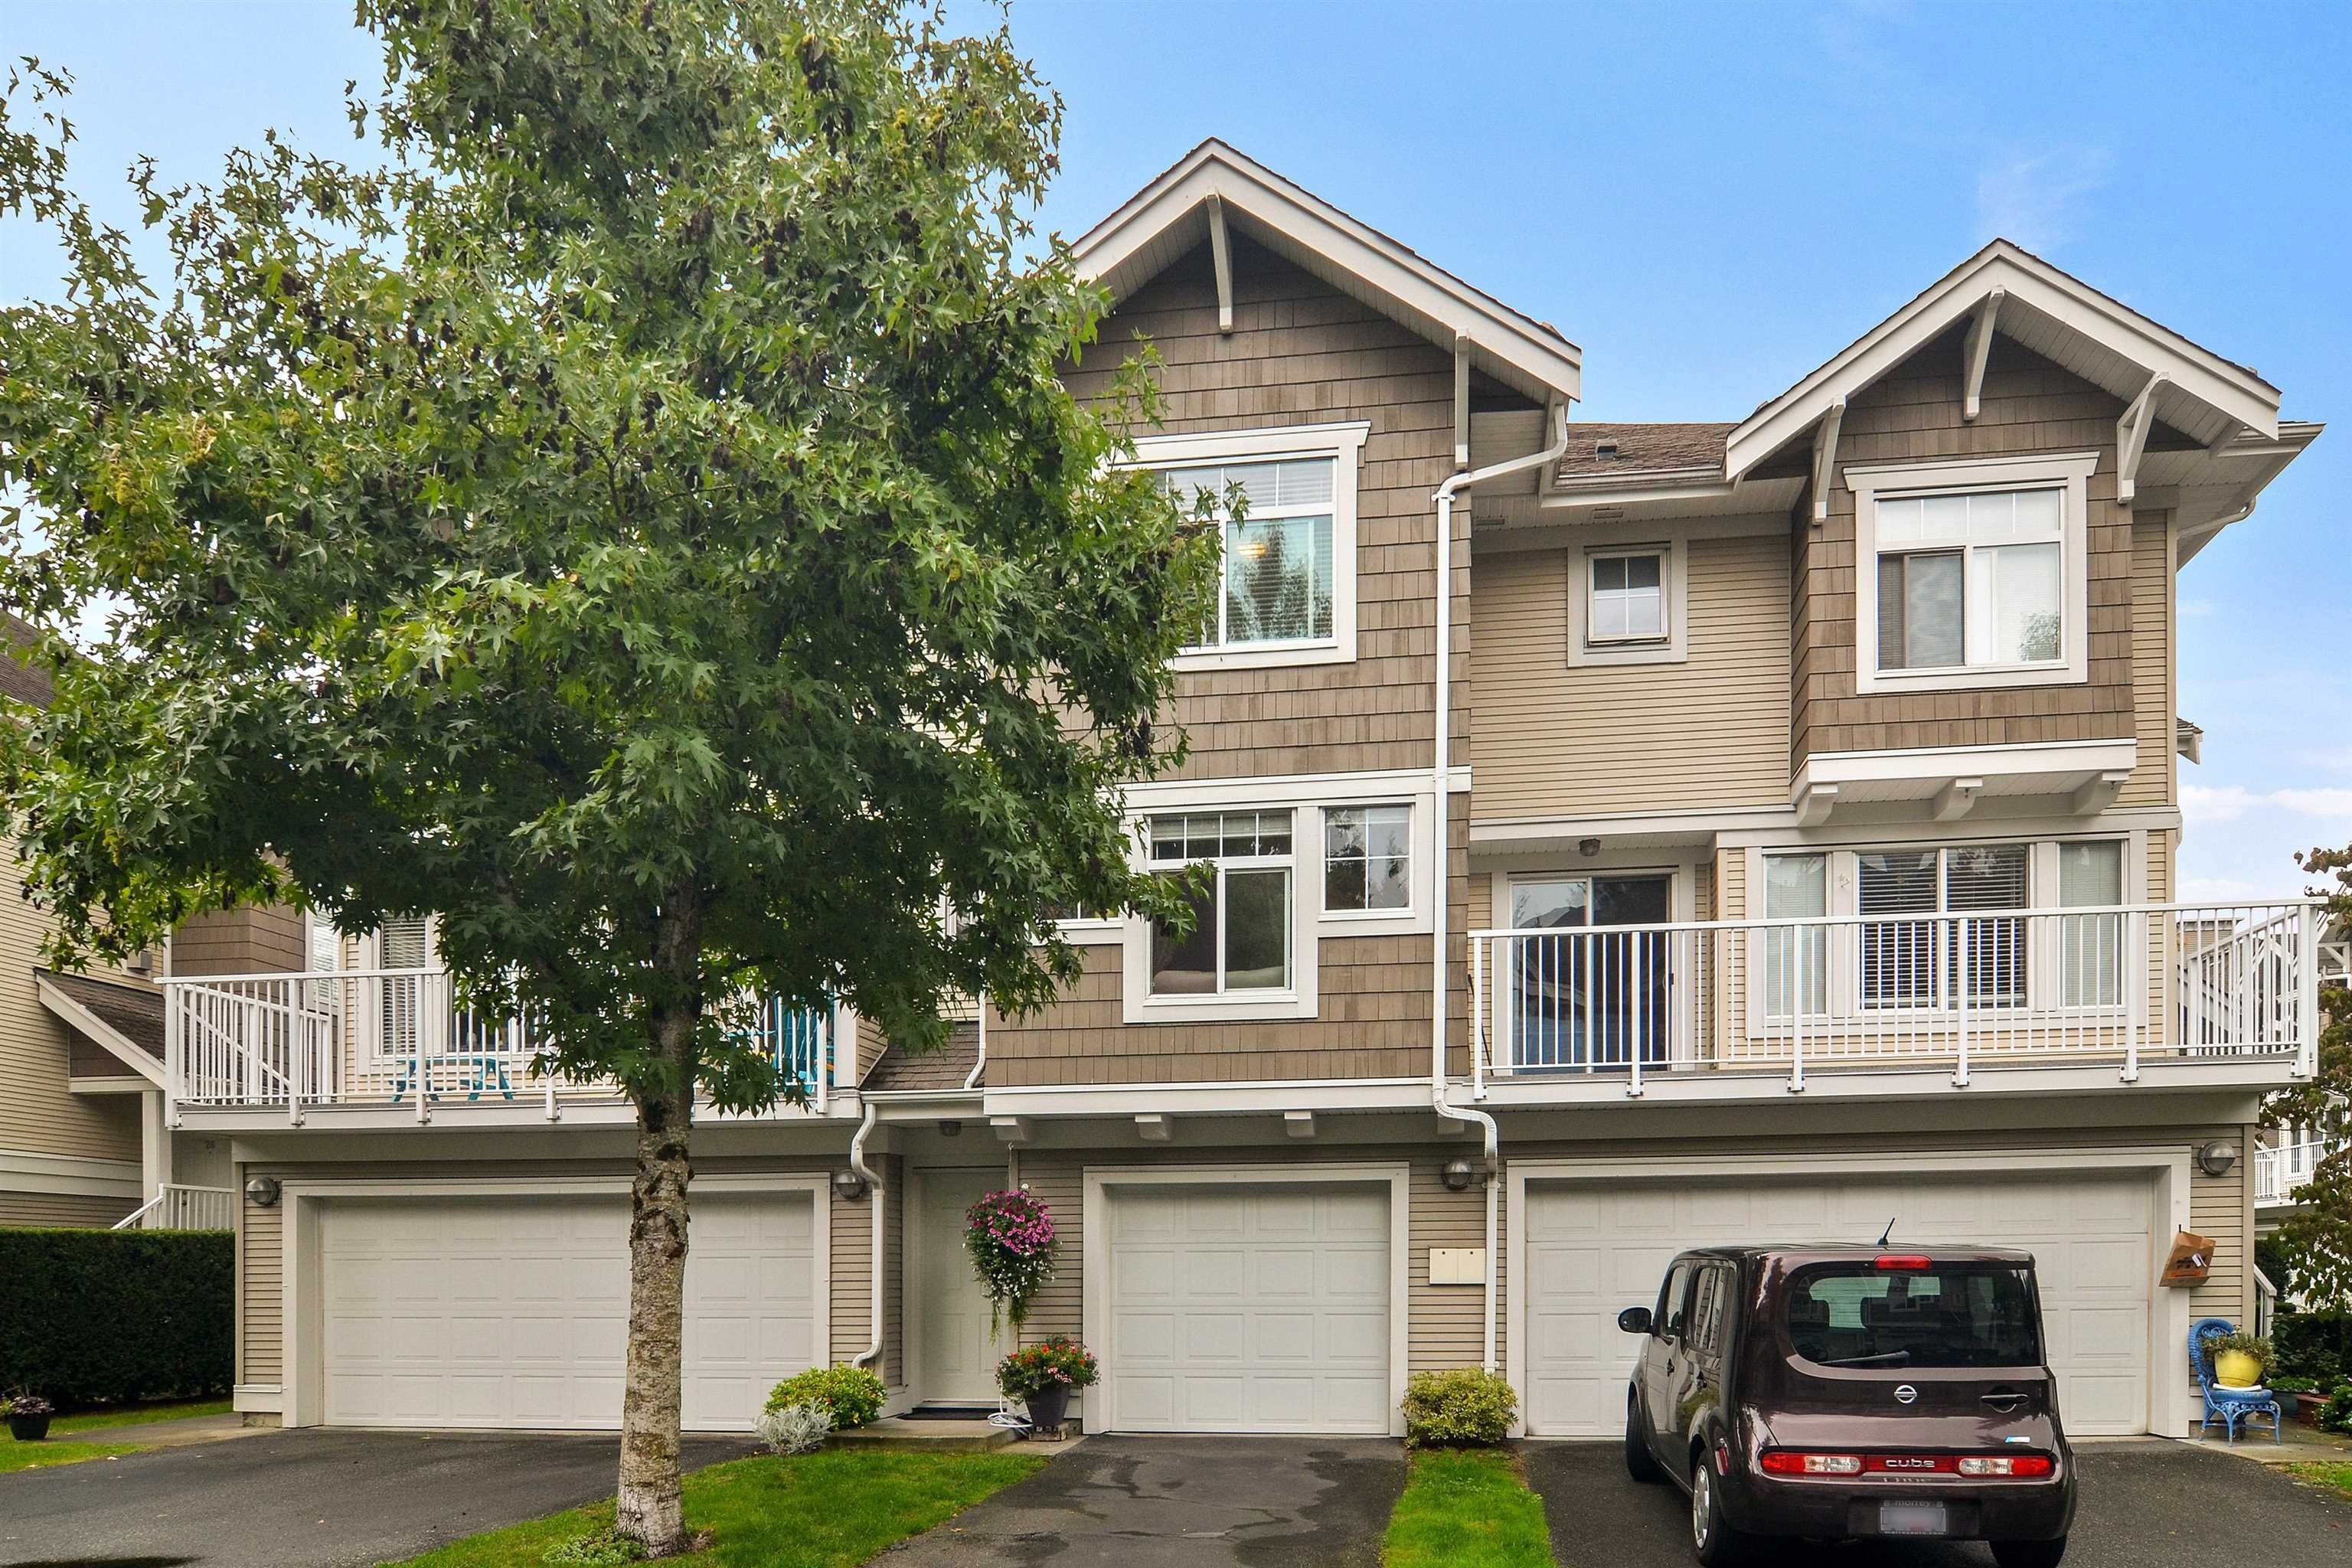 """Main Photo: 28 20771 DUNCAN Way in Langley: Langley City Townhouse for sale in """"Wyndham Lane"""" : MLS®# R2620658"""